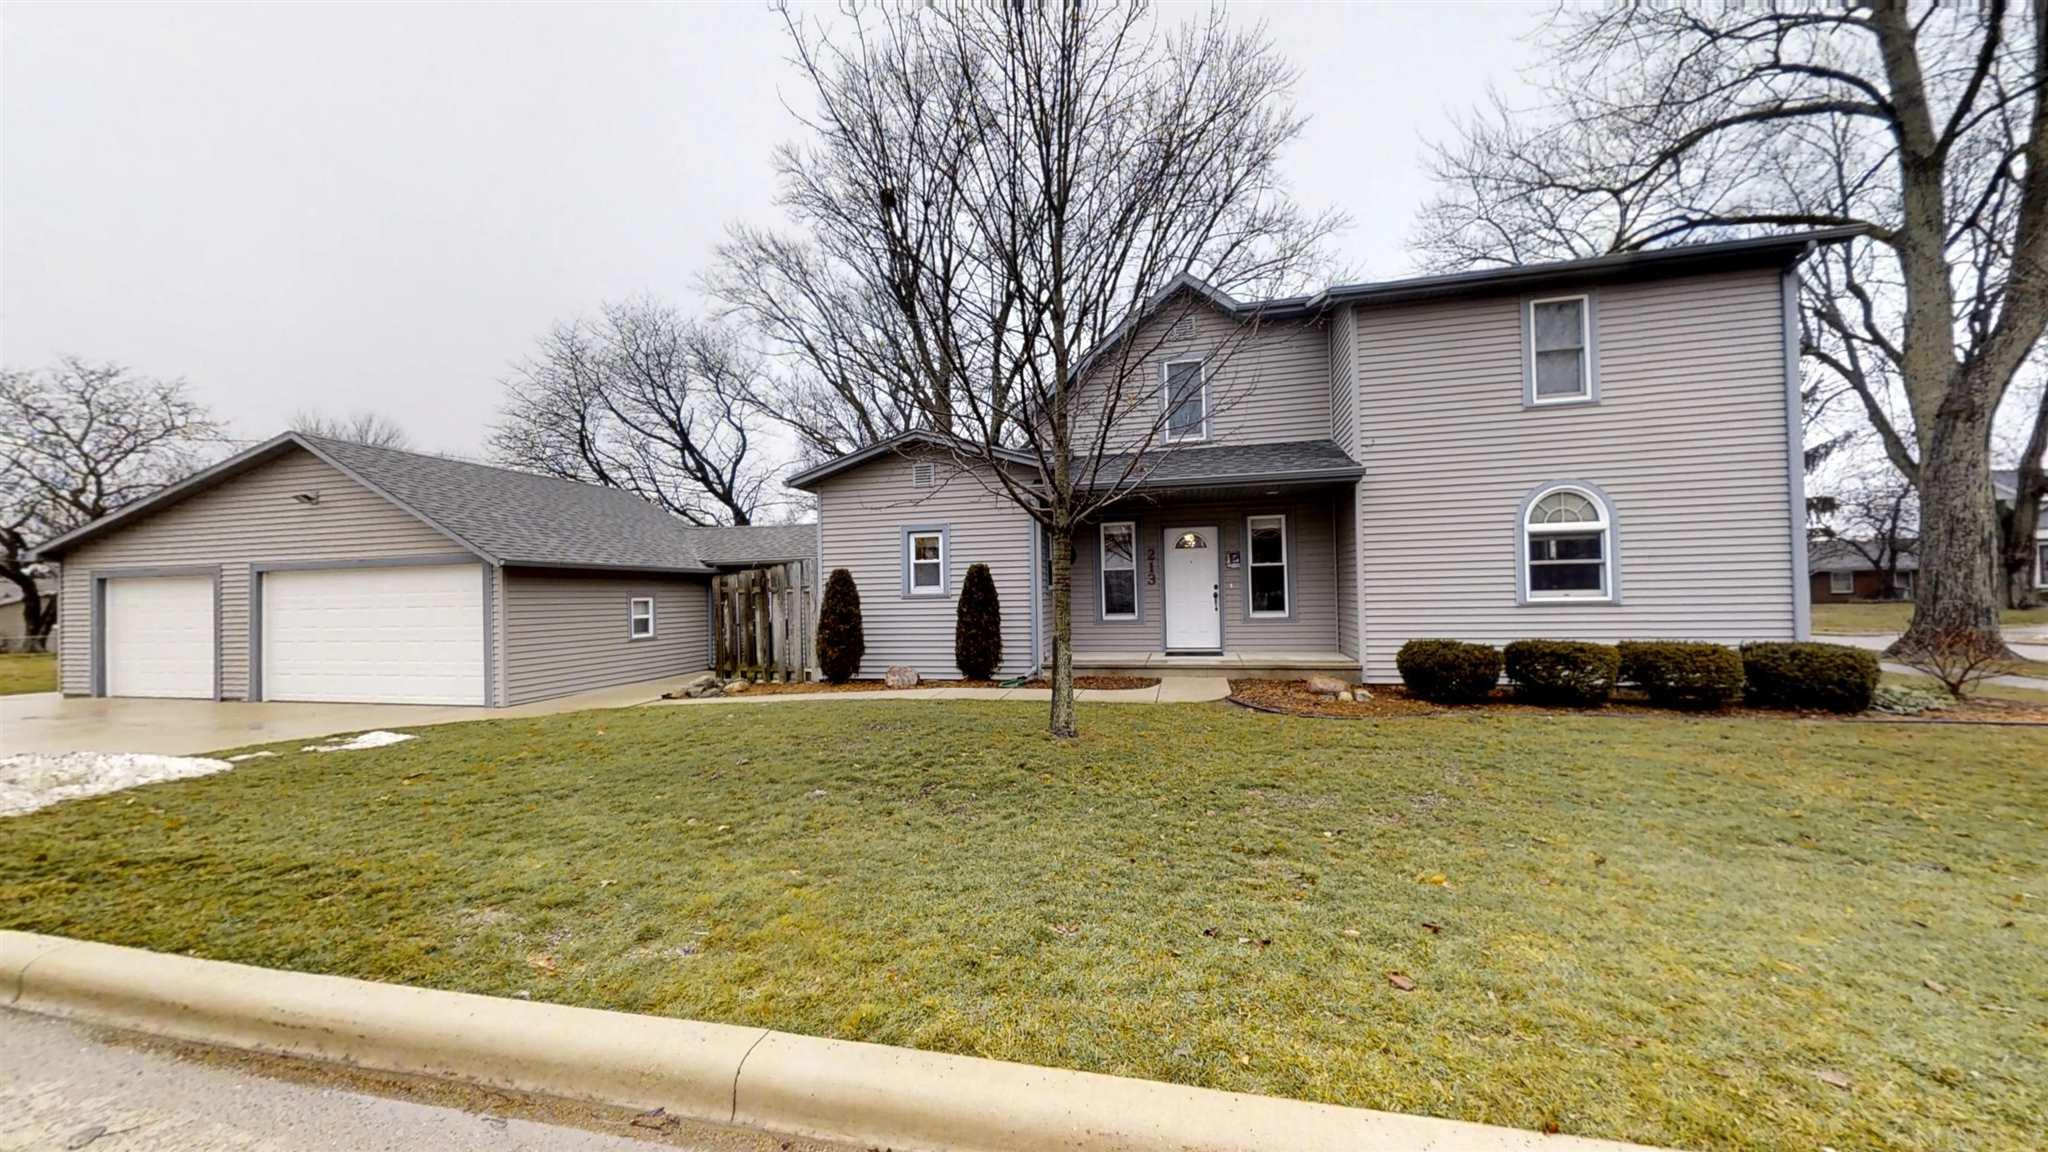 213 S Olive Wakarusa, IN 46573